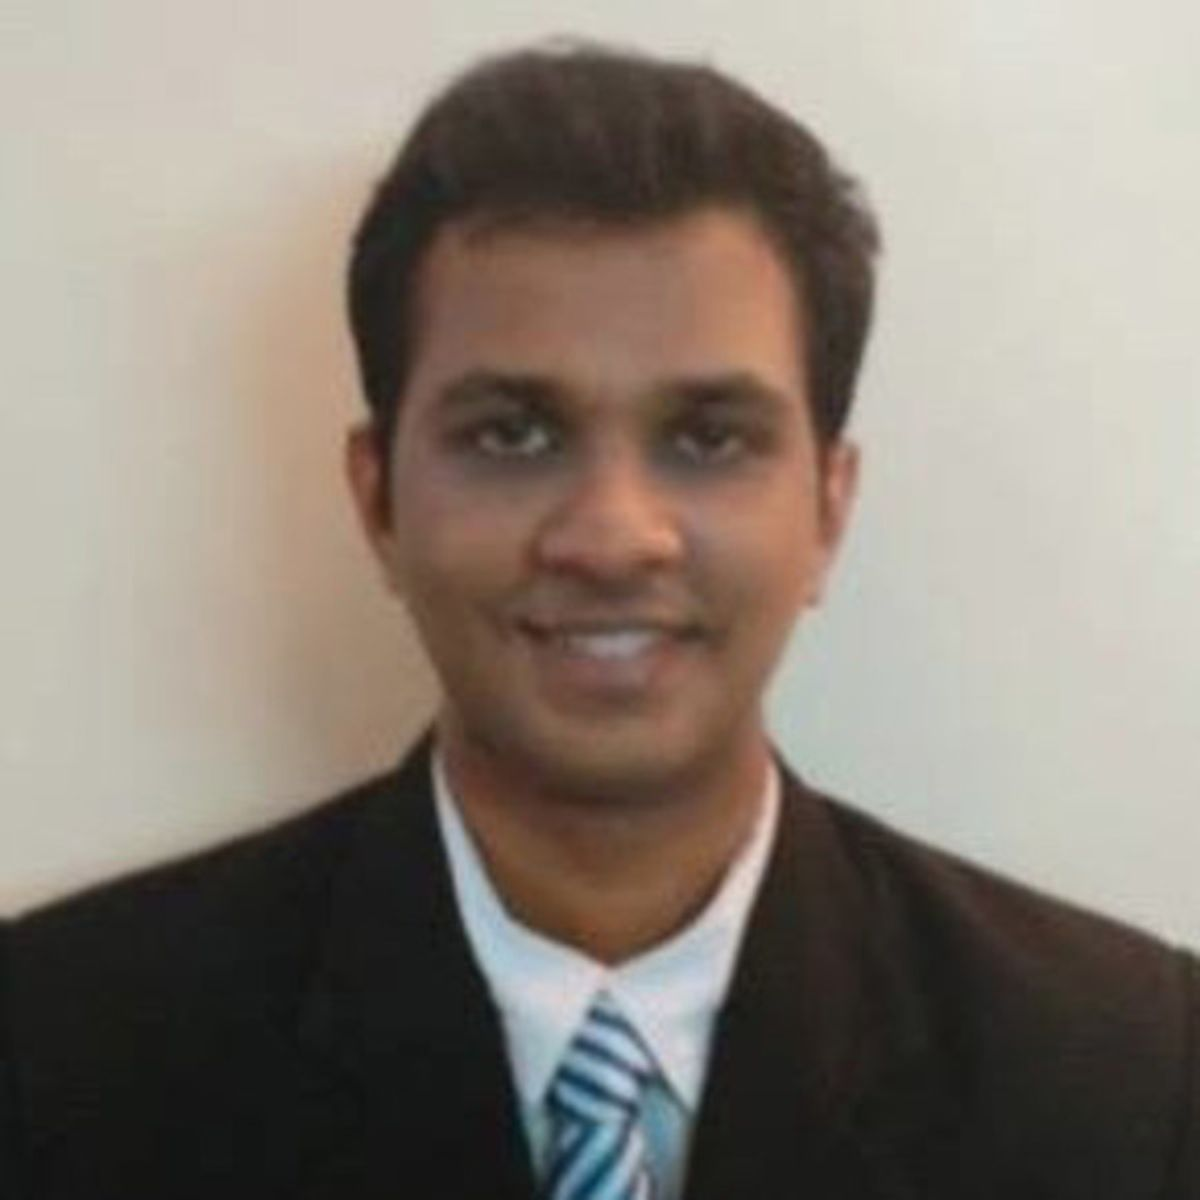 Photo of Shashank Singh, Associate at Orios Venture Partners